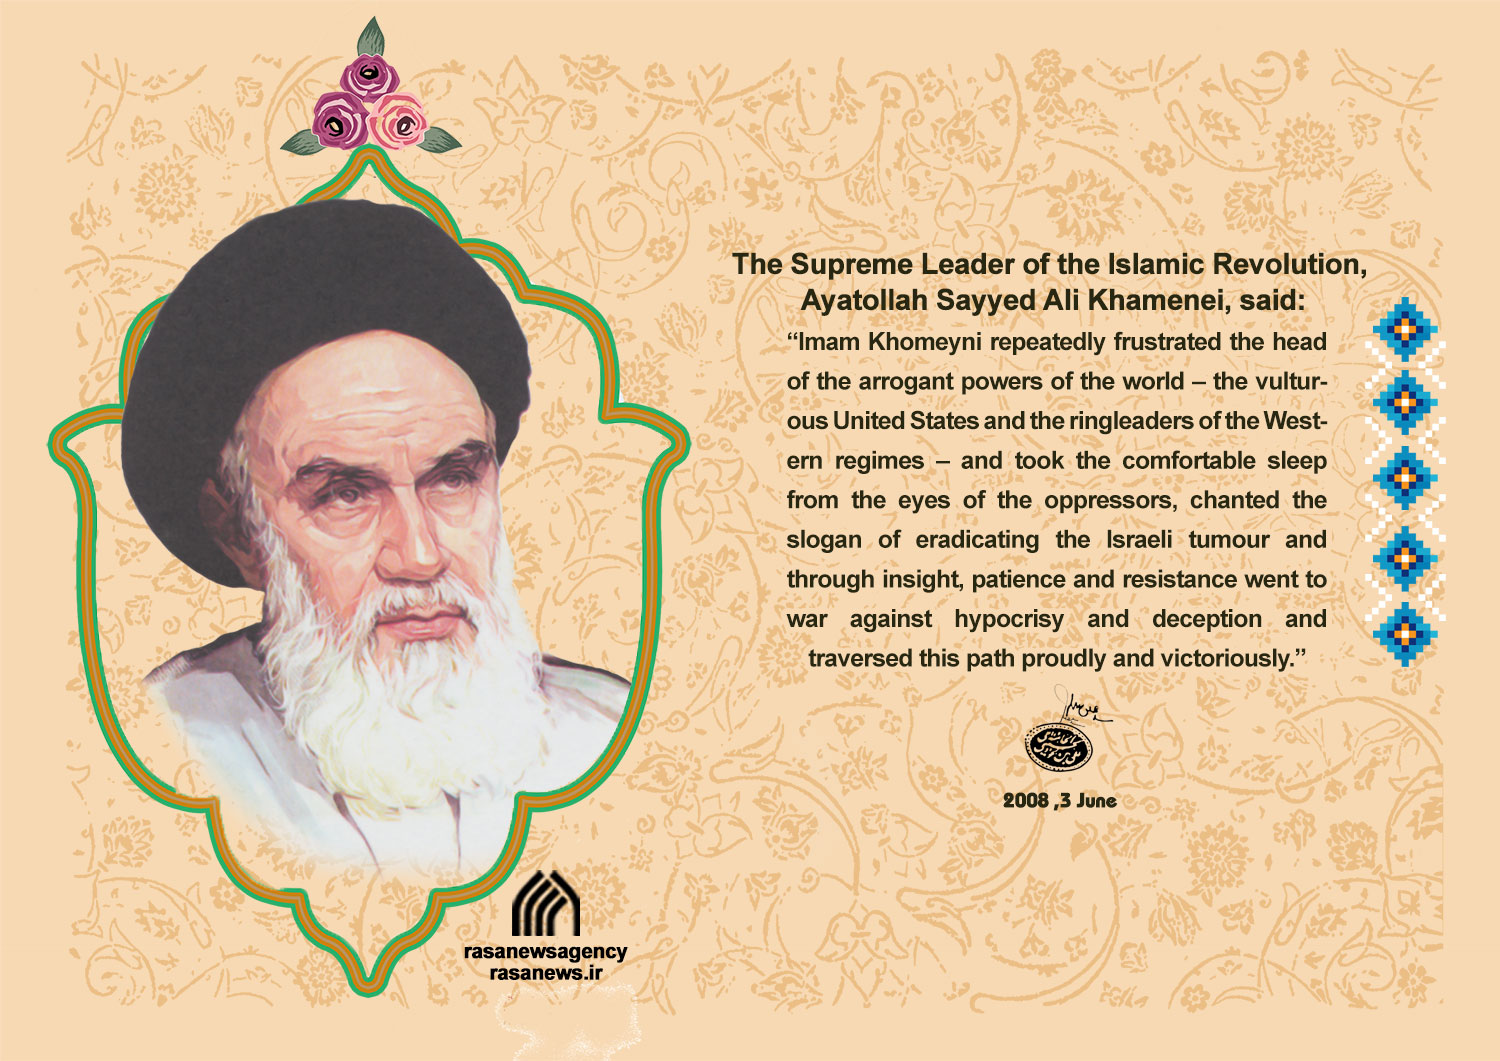 Imam Khomeyni repeatedly frustrated the head of the arrogant powers of the world